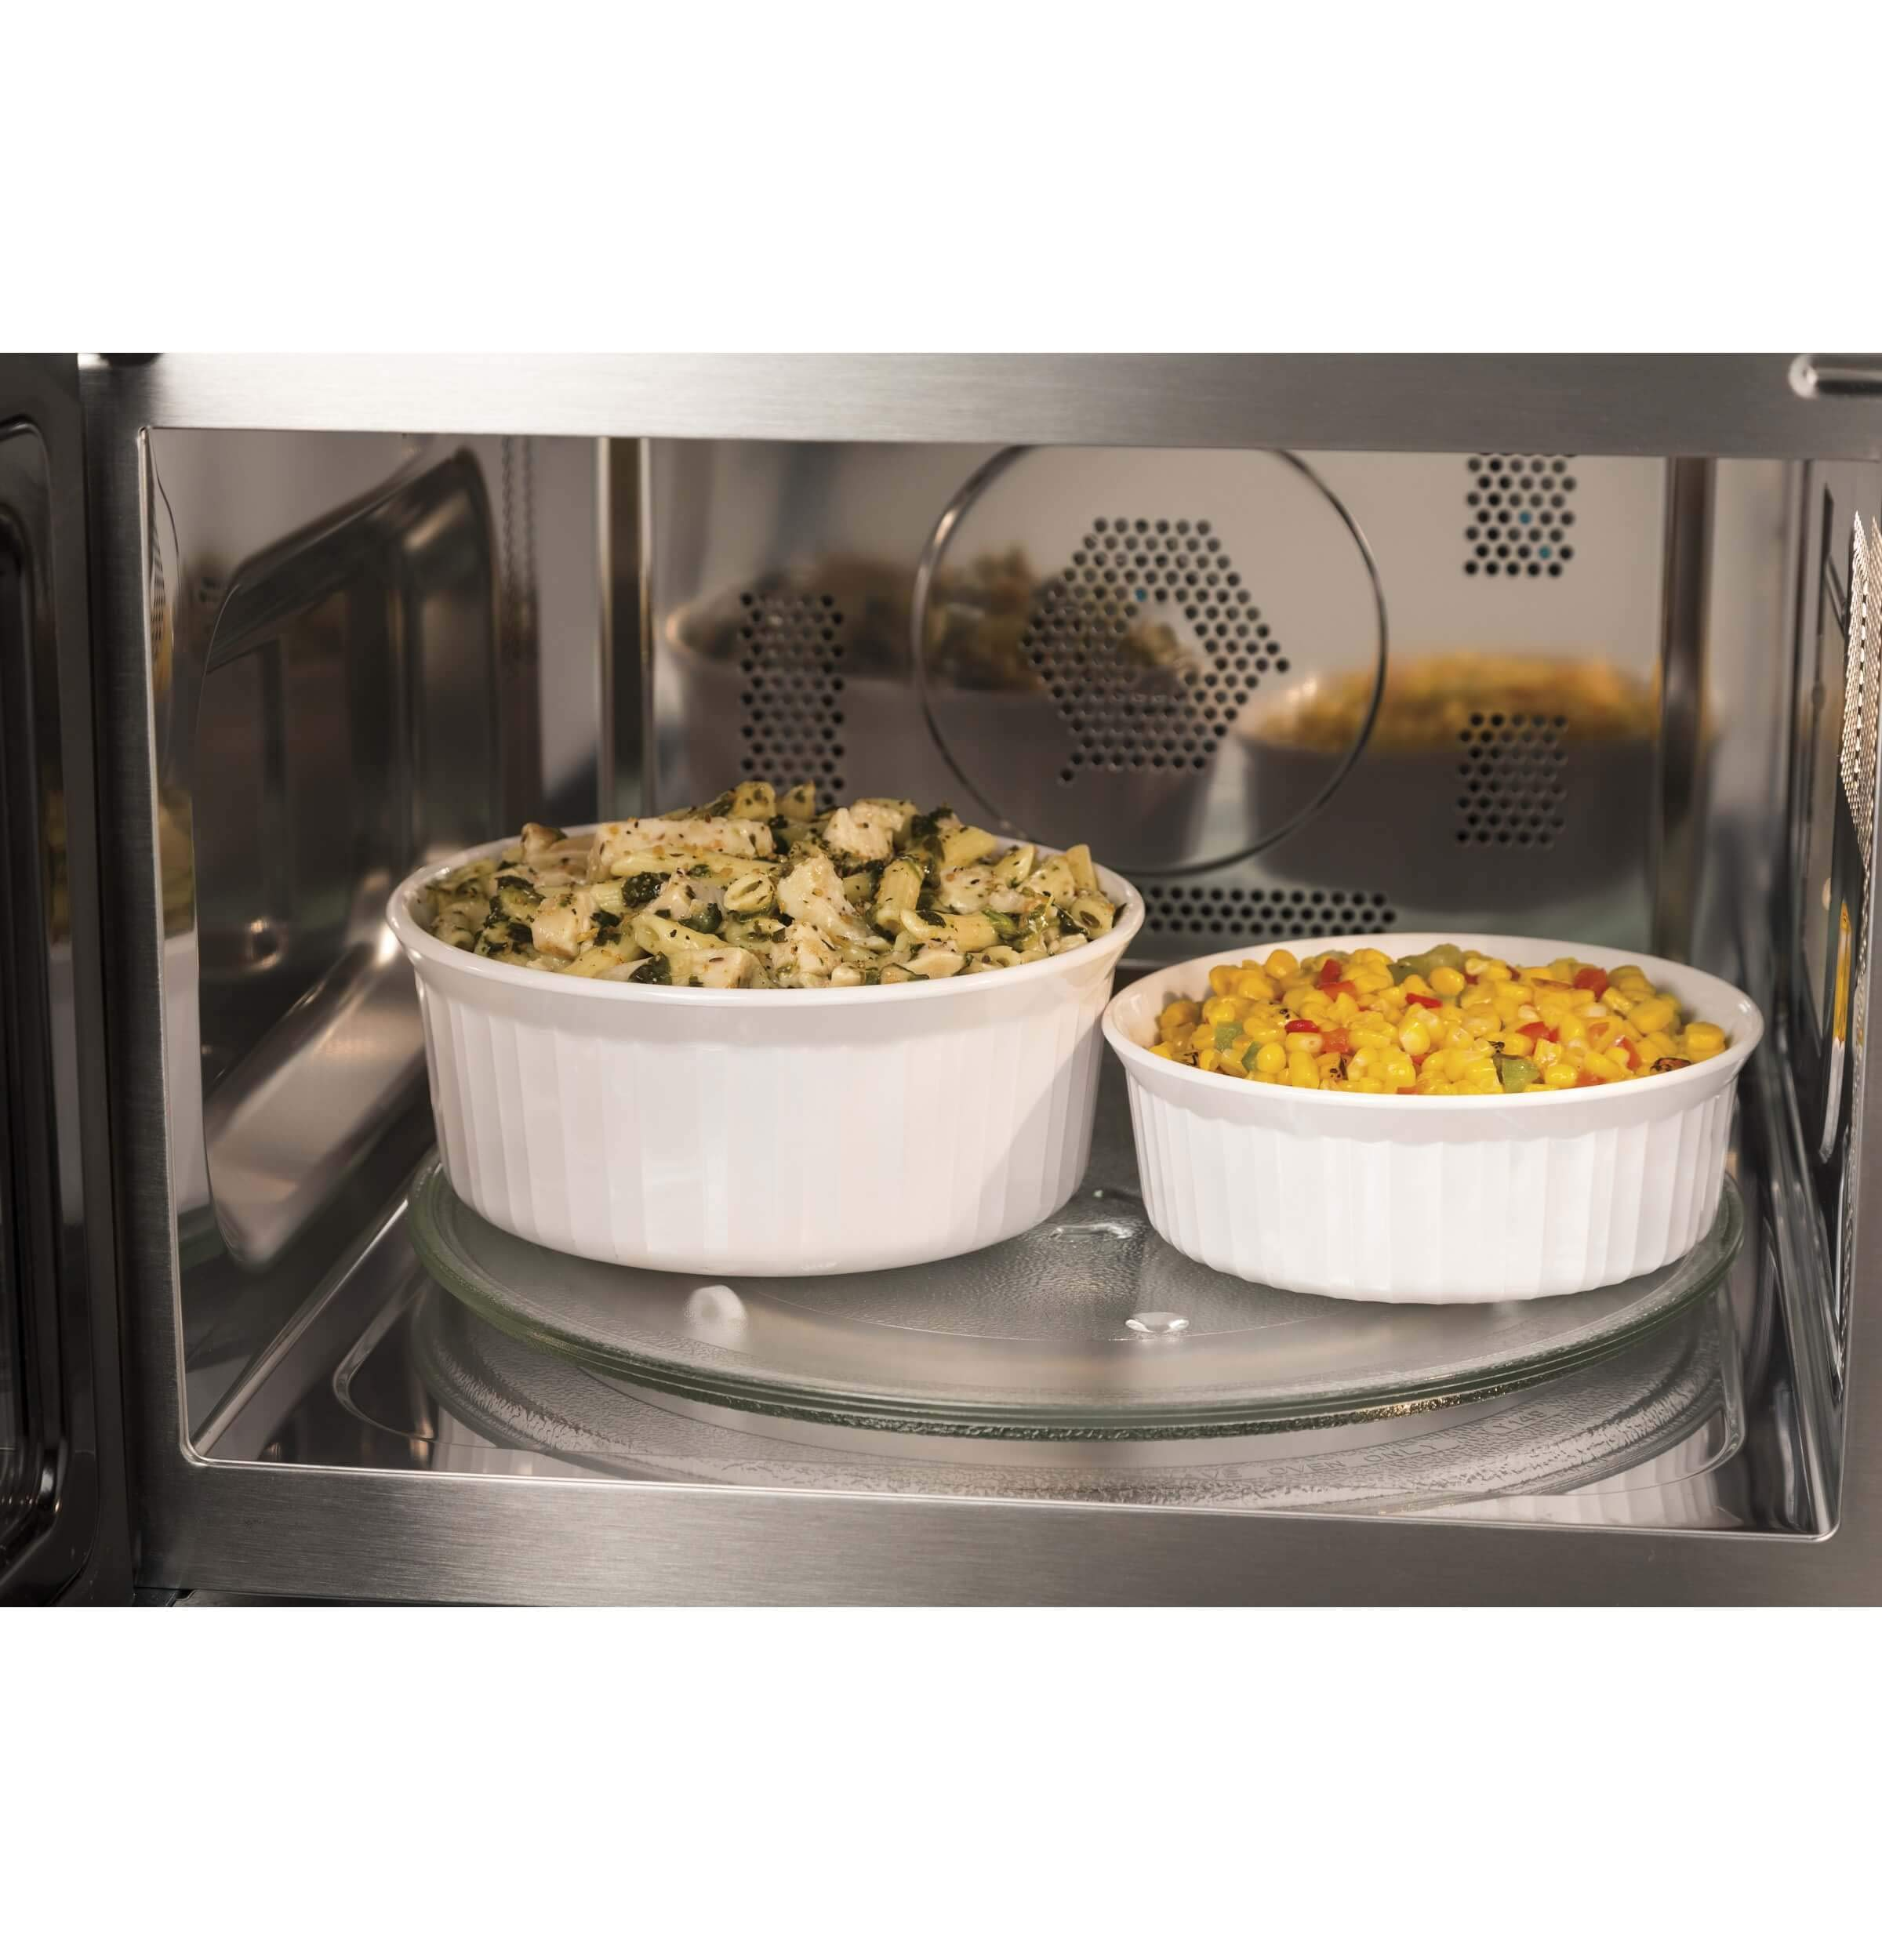 GE PEB9159EJES Microwave Oven by GE (Image #6)